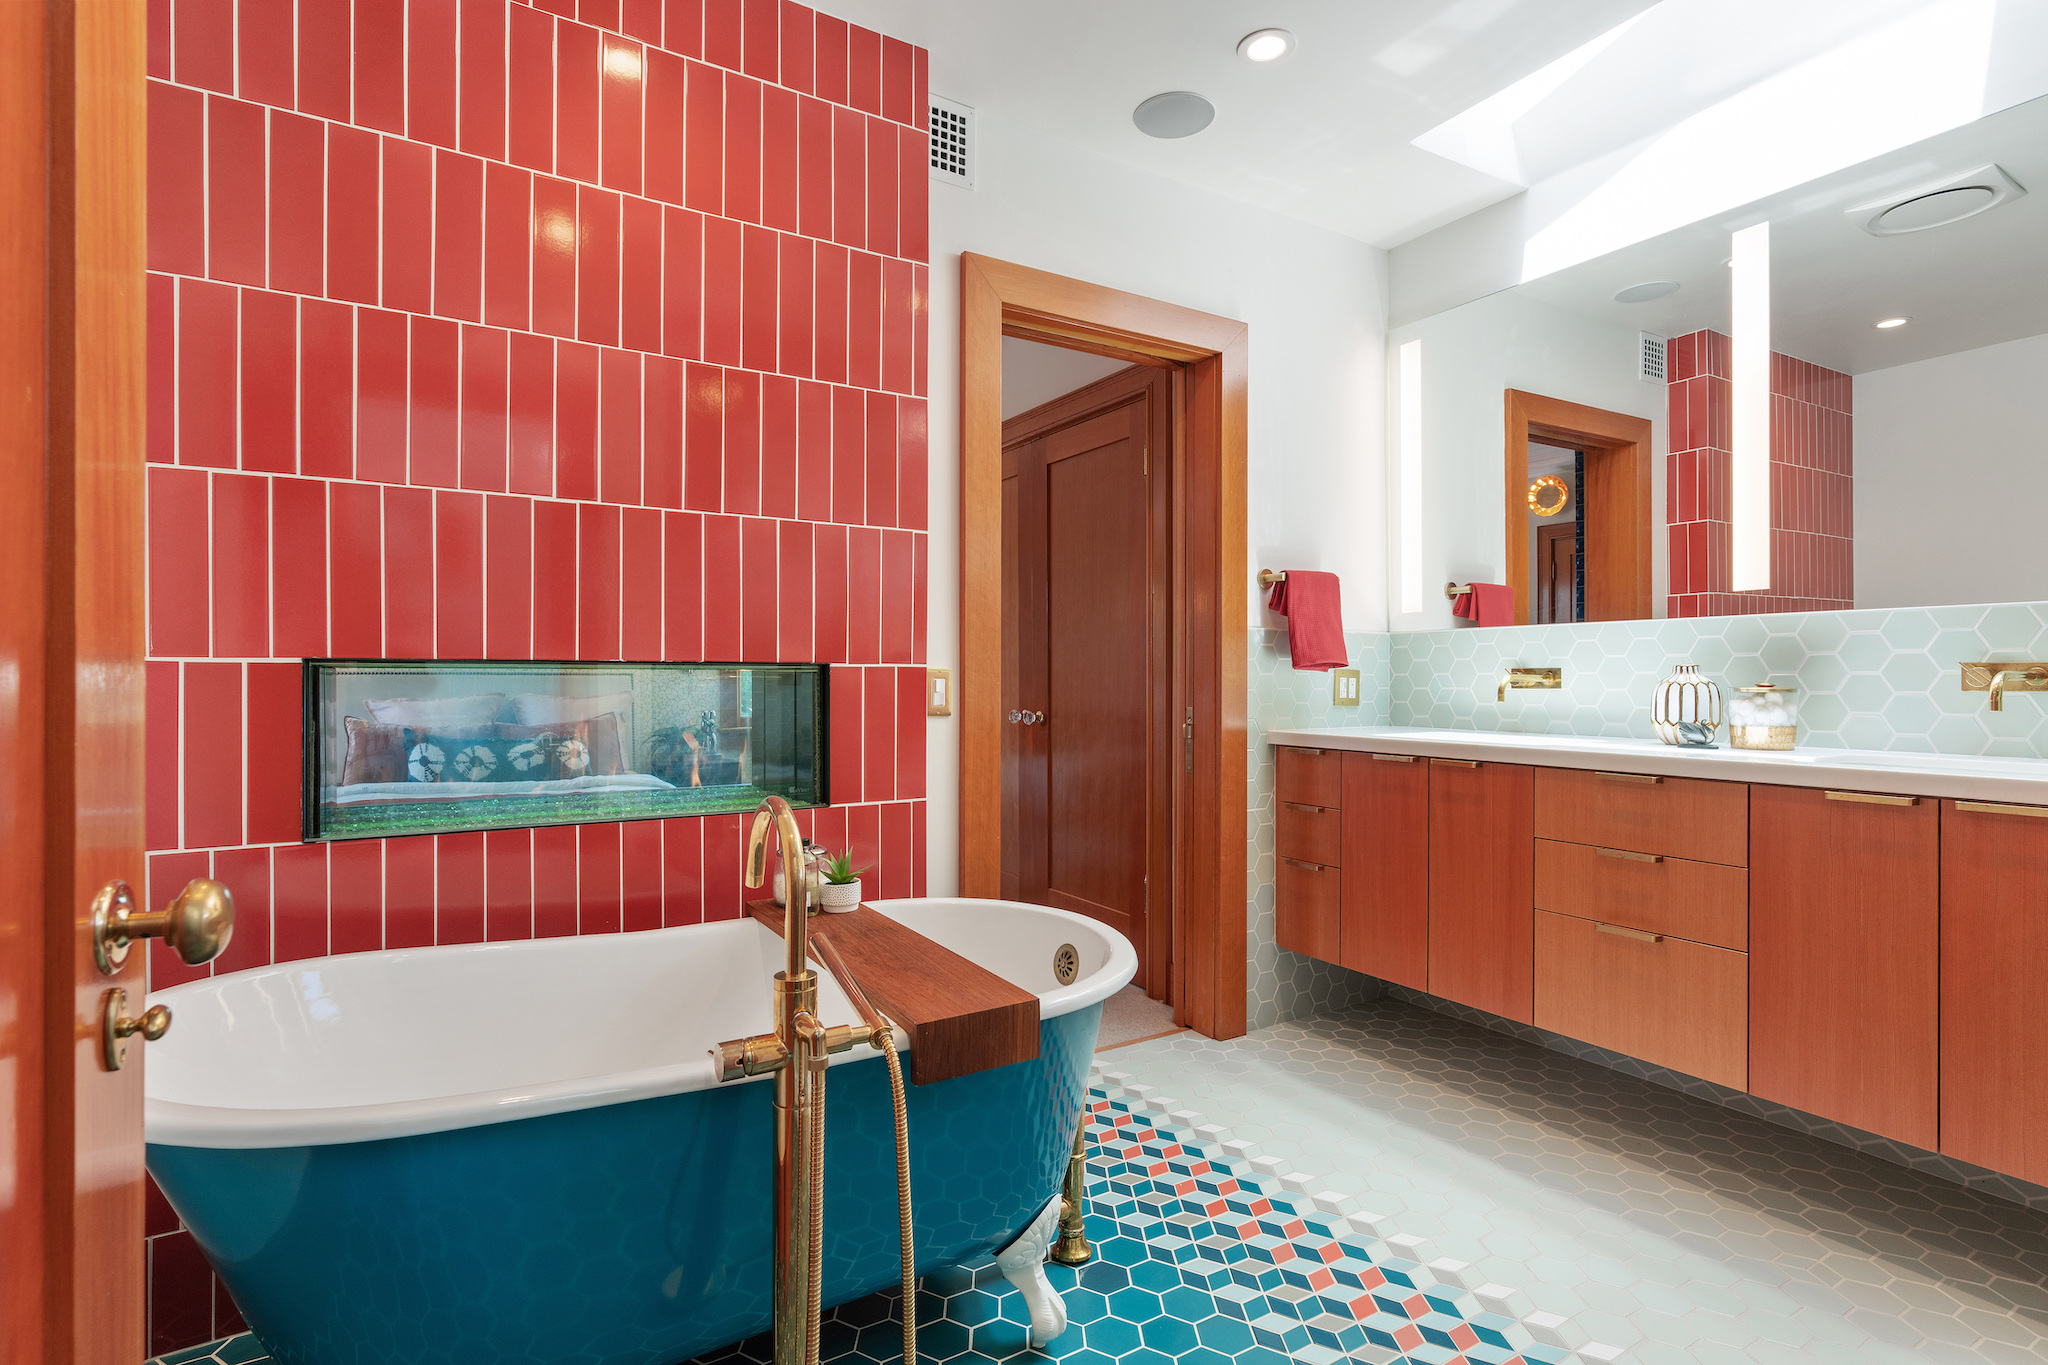 The fireplace you see in the primary bath suite is two sided, shared with the primary bedroom.